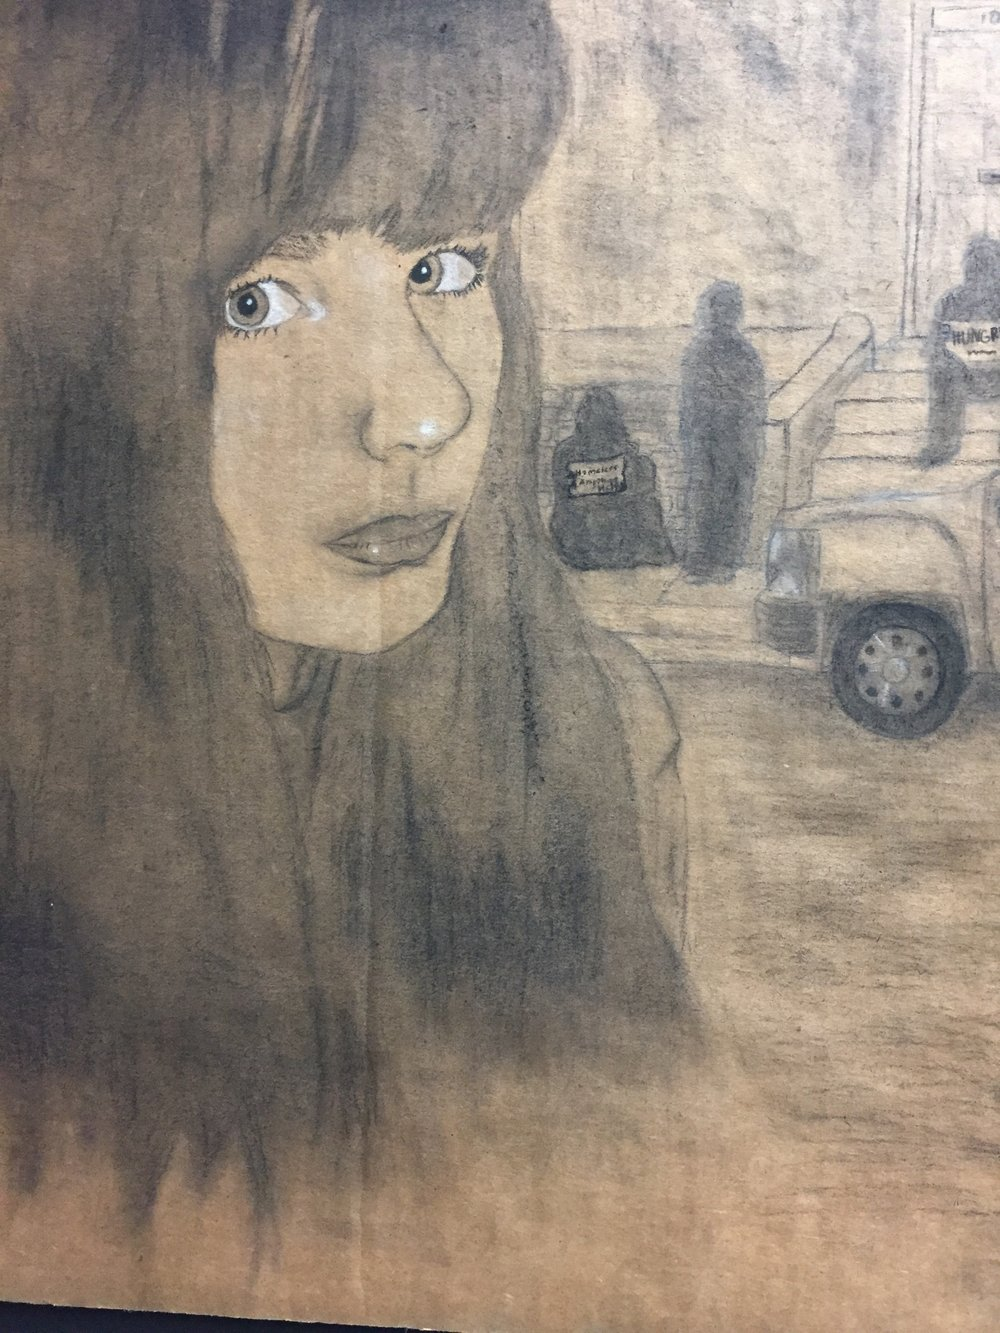 """Can You See Them?"" by 8th Grade Artist (Photo by Melody Weintraub-Do Not Use Without Permission)"